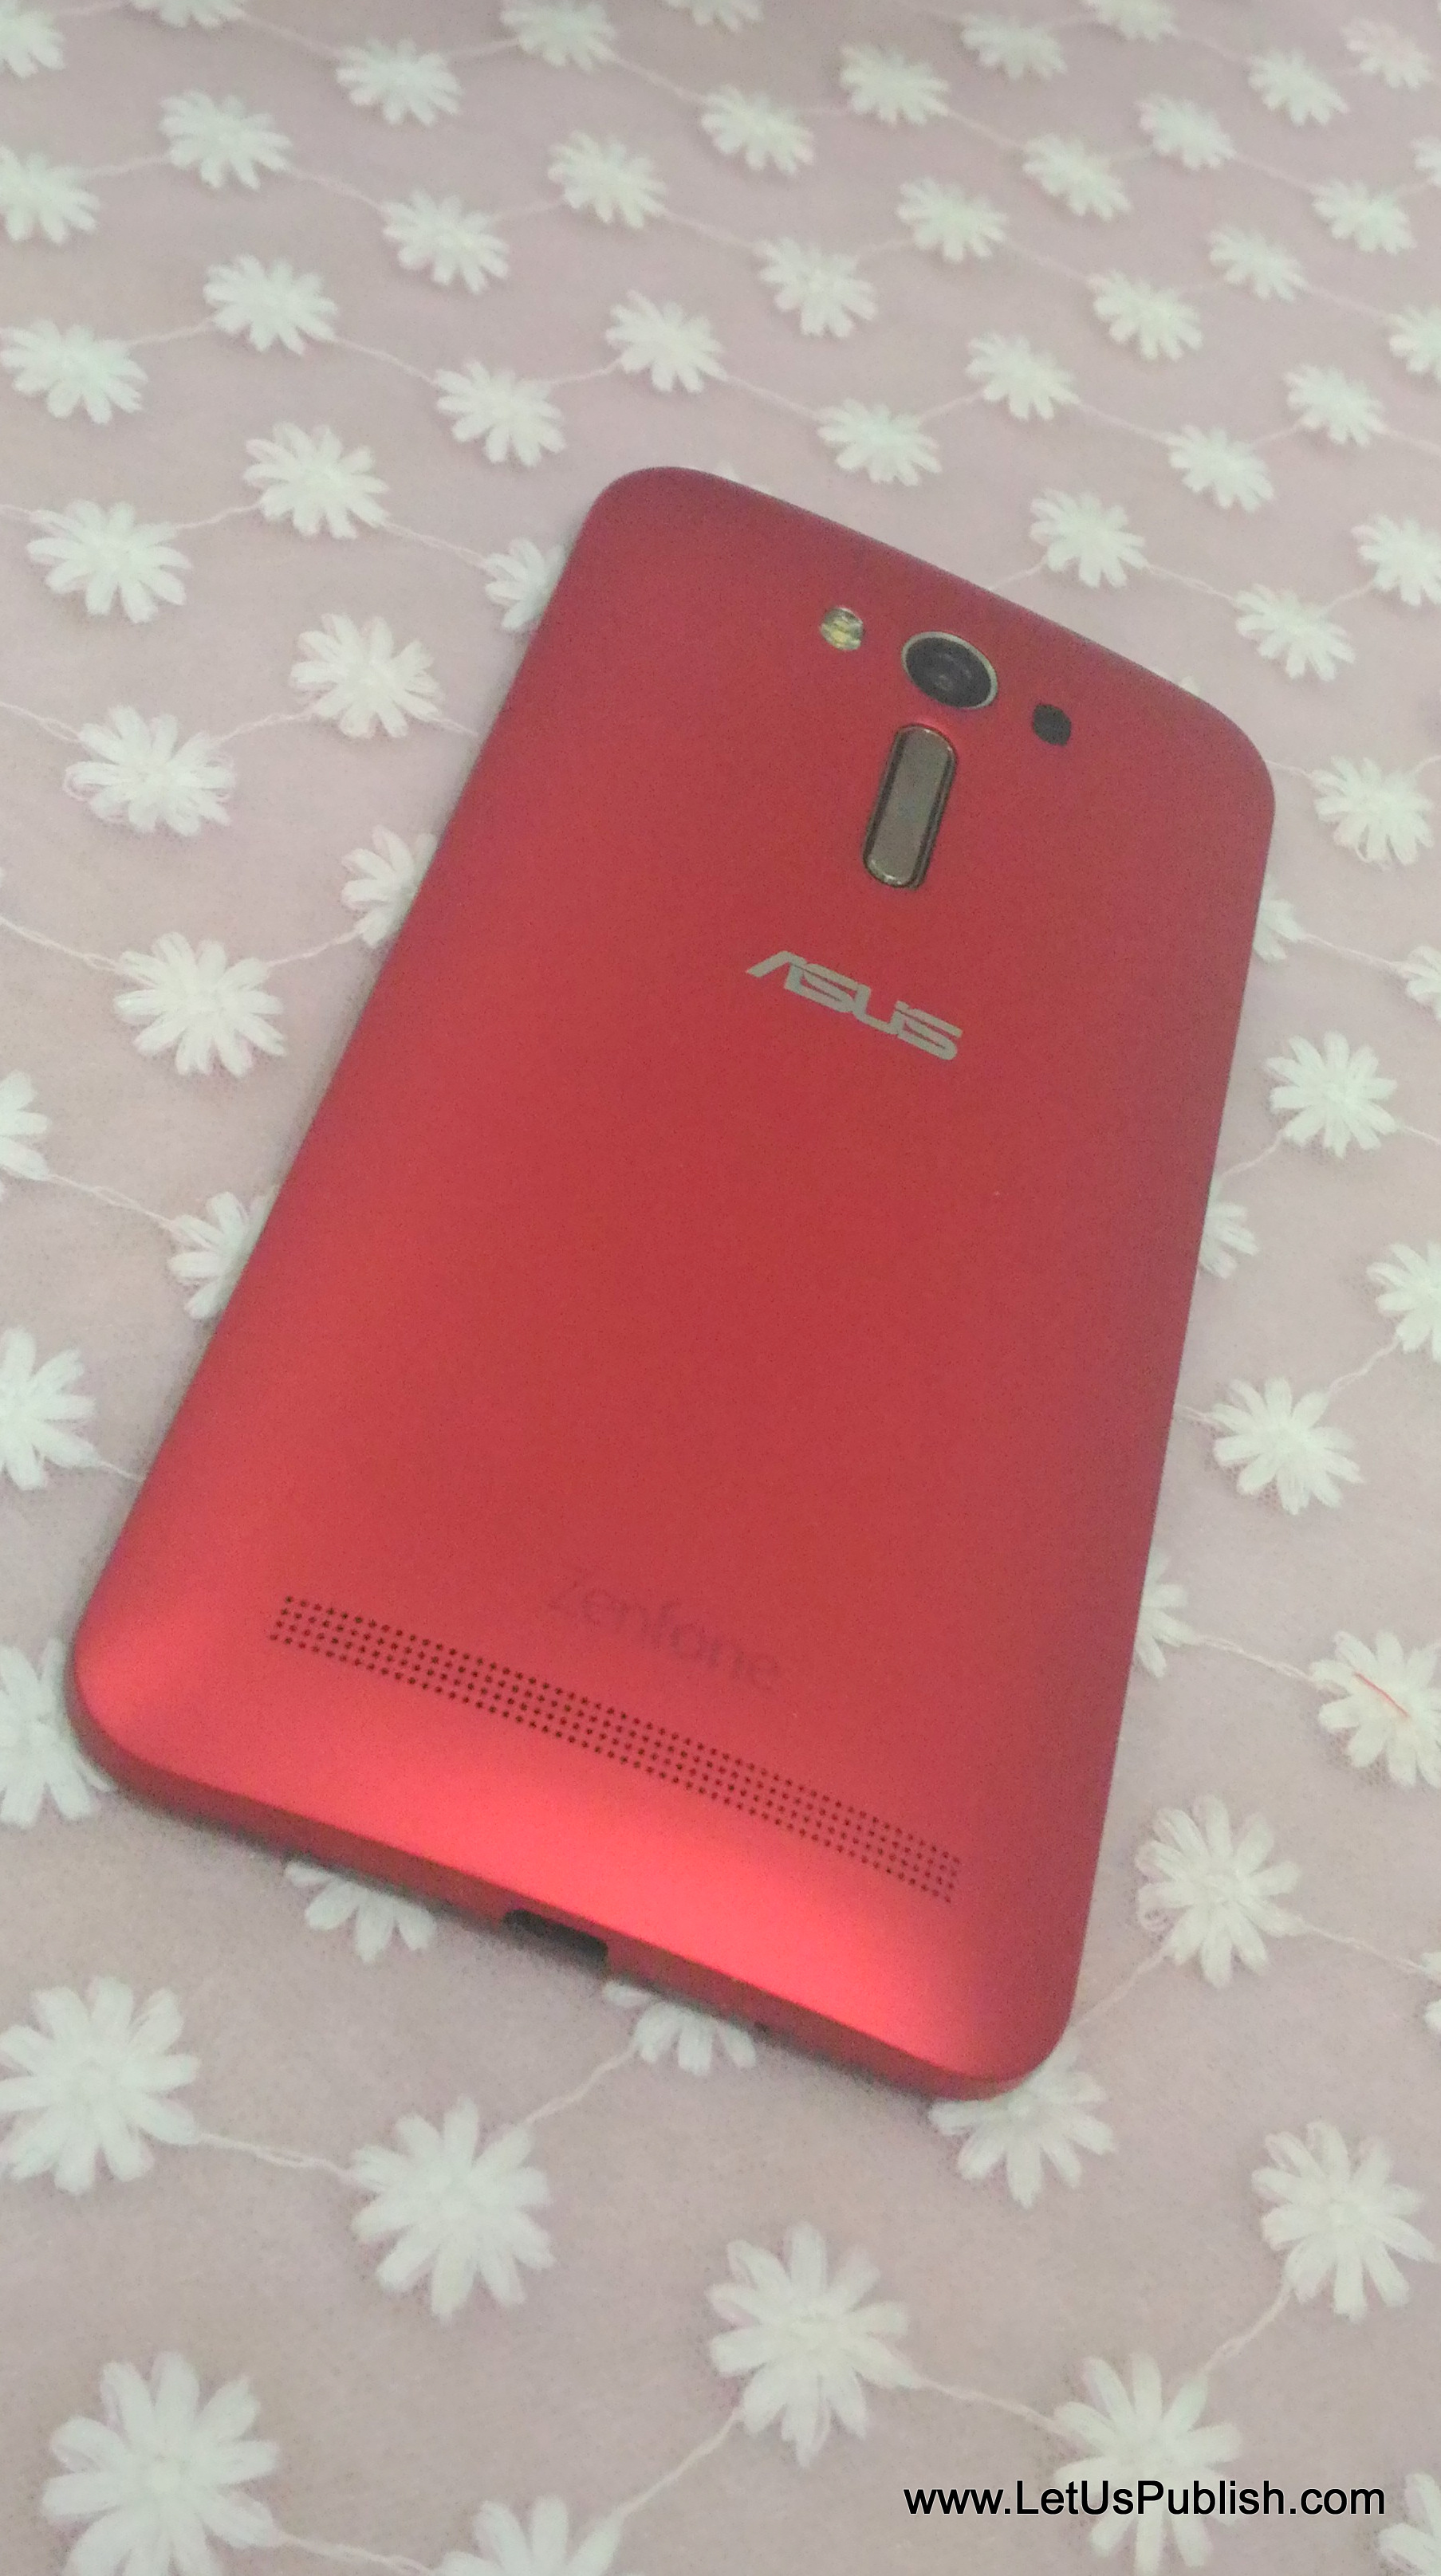 5 Reasons Why You Should Grab An Asus Zenfone 2 Laser Now